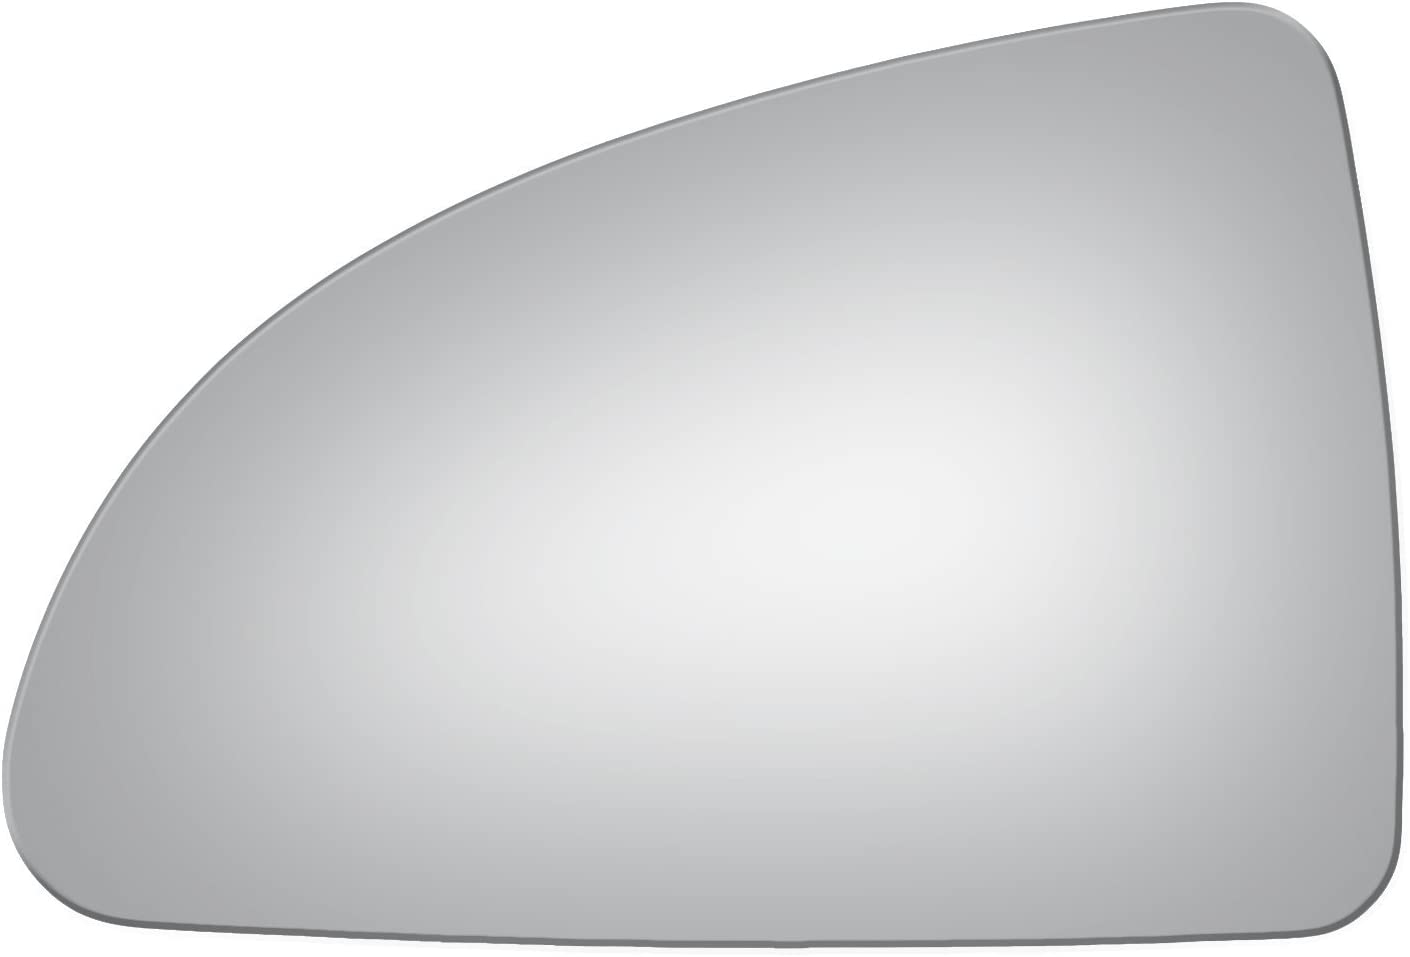 Flat Driver Left Side Replacement for Glass 2005-2010 Tulsa Regular discount Mall Che Mirror